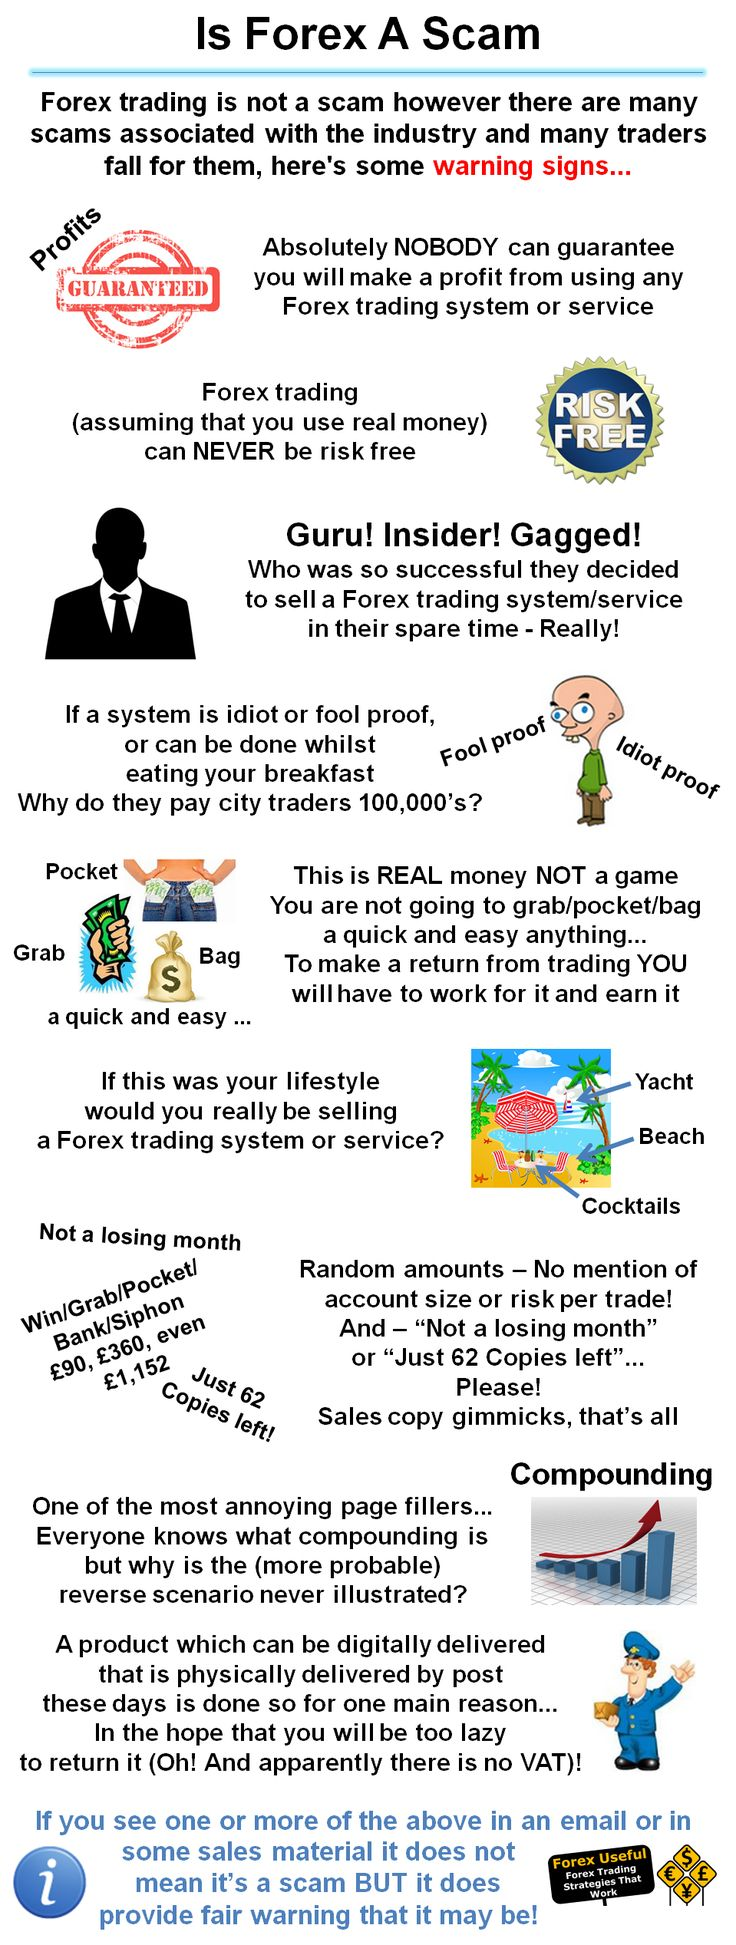 Is forex trading a scam